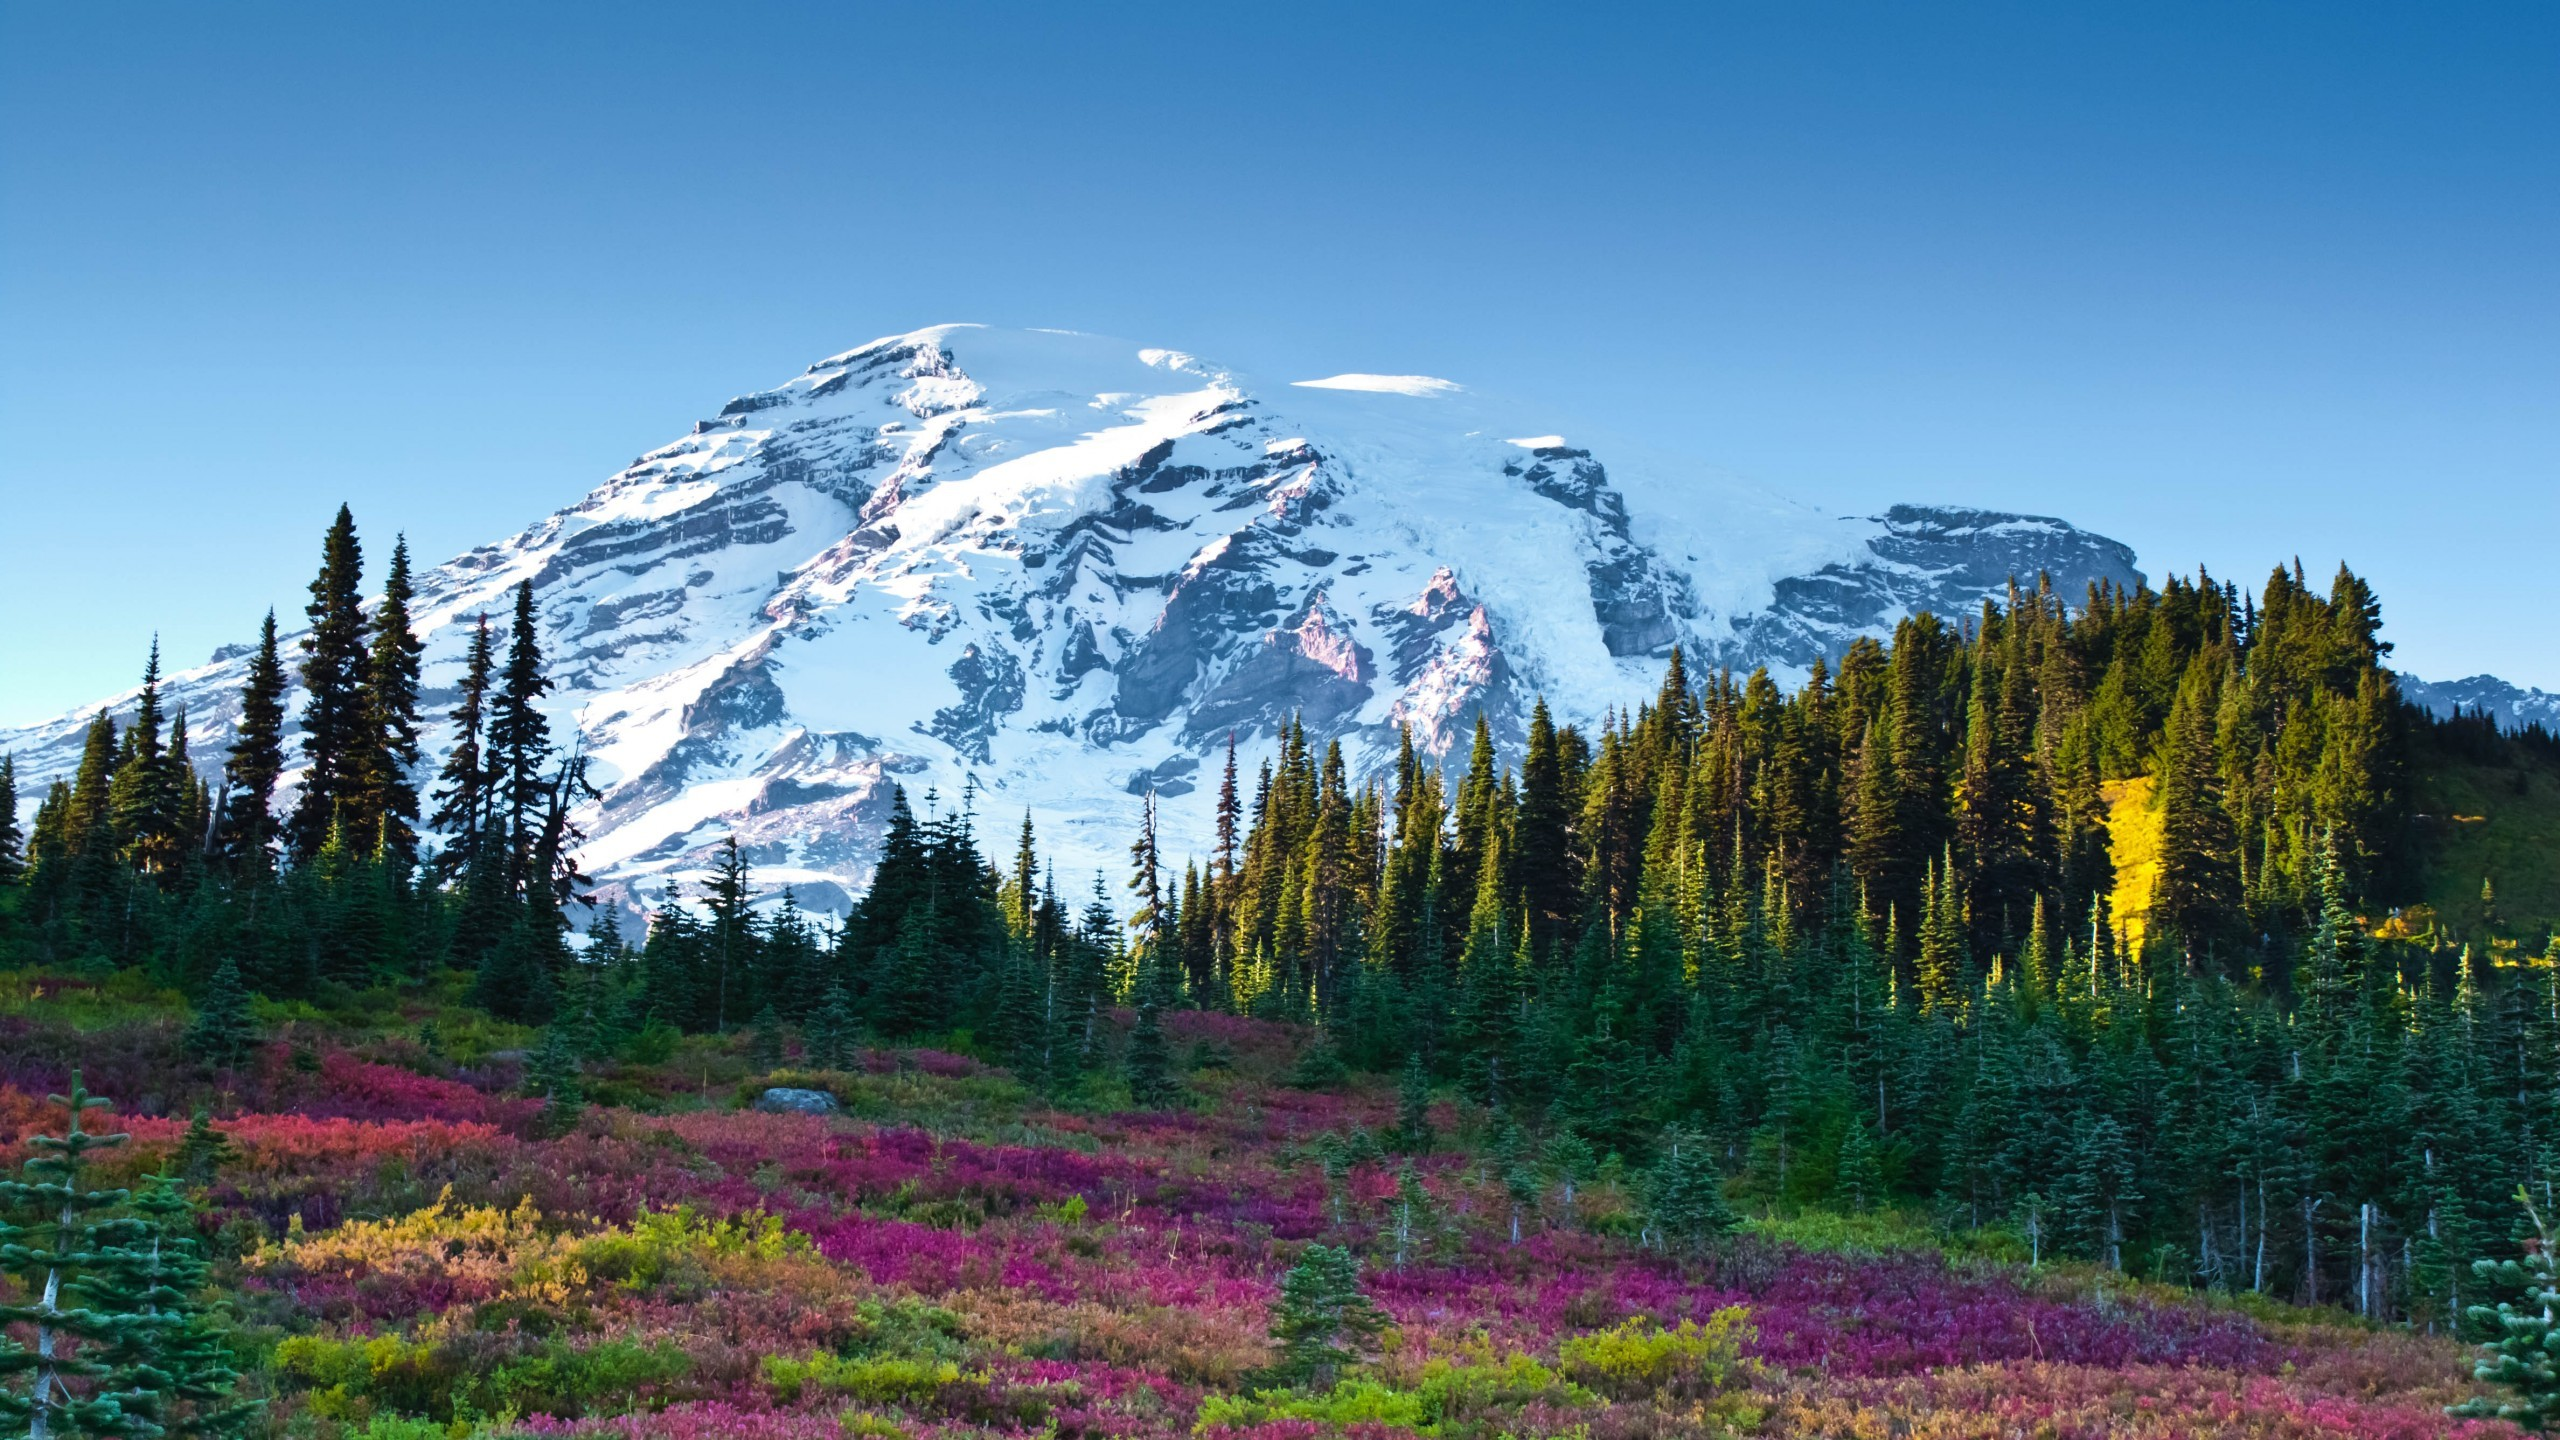 2560x1440 Nature / Mount Adams Wallpaper